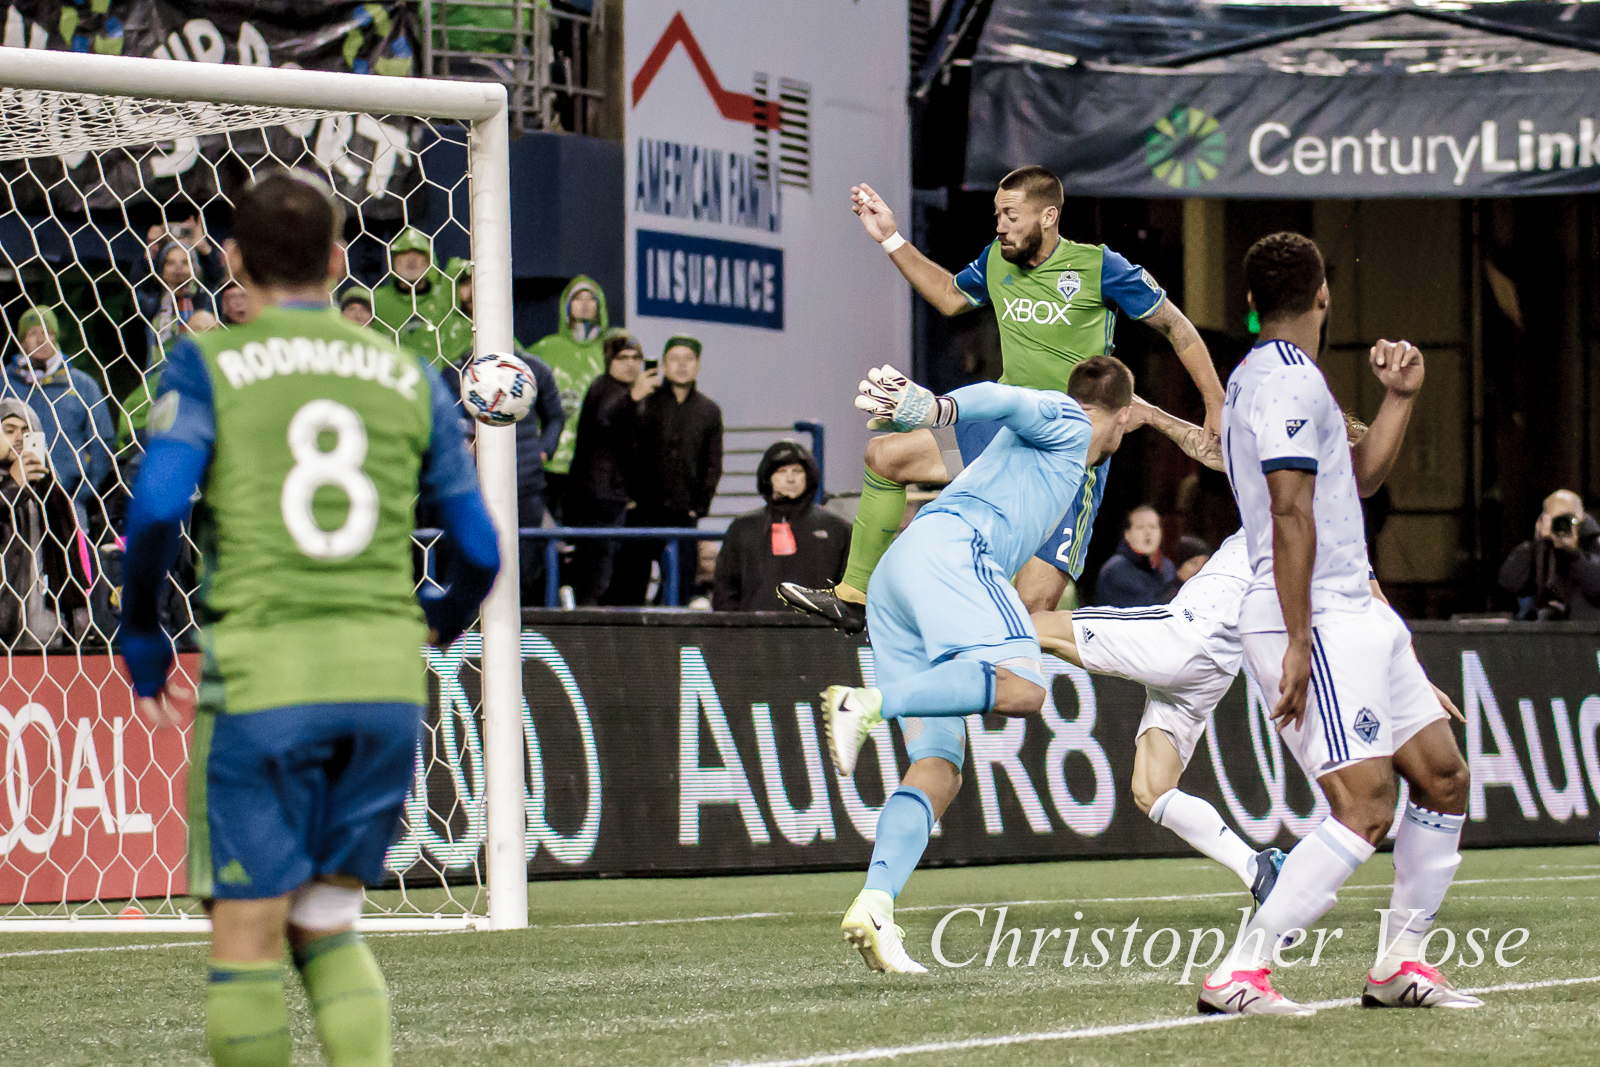 2017-11-02 Clint Dempsey's Second Goal.jpg